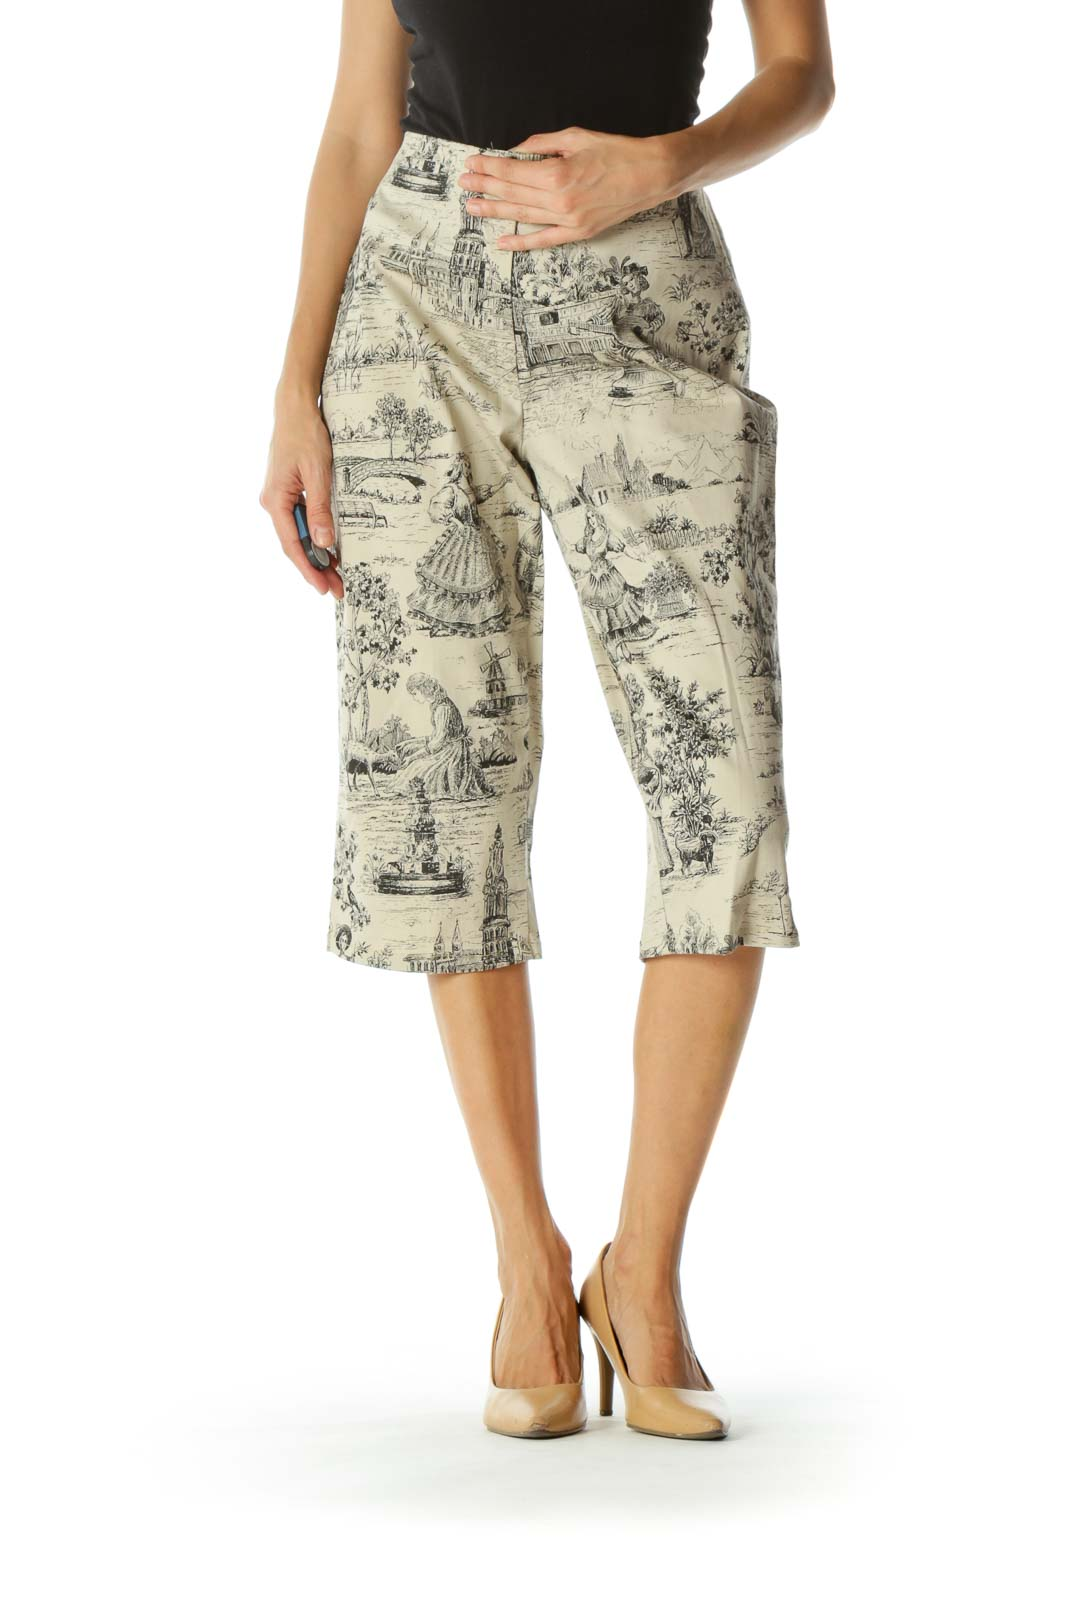 Beige Black Period Print Scenes Cropped Zippered High-Waist Stretch Pants (Altered) Front